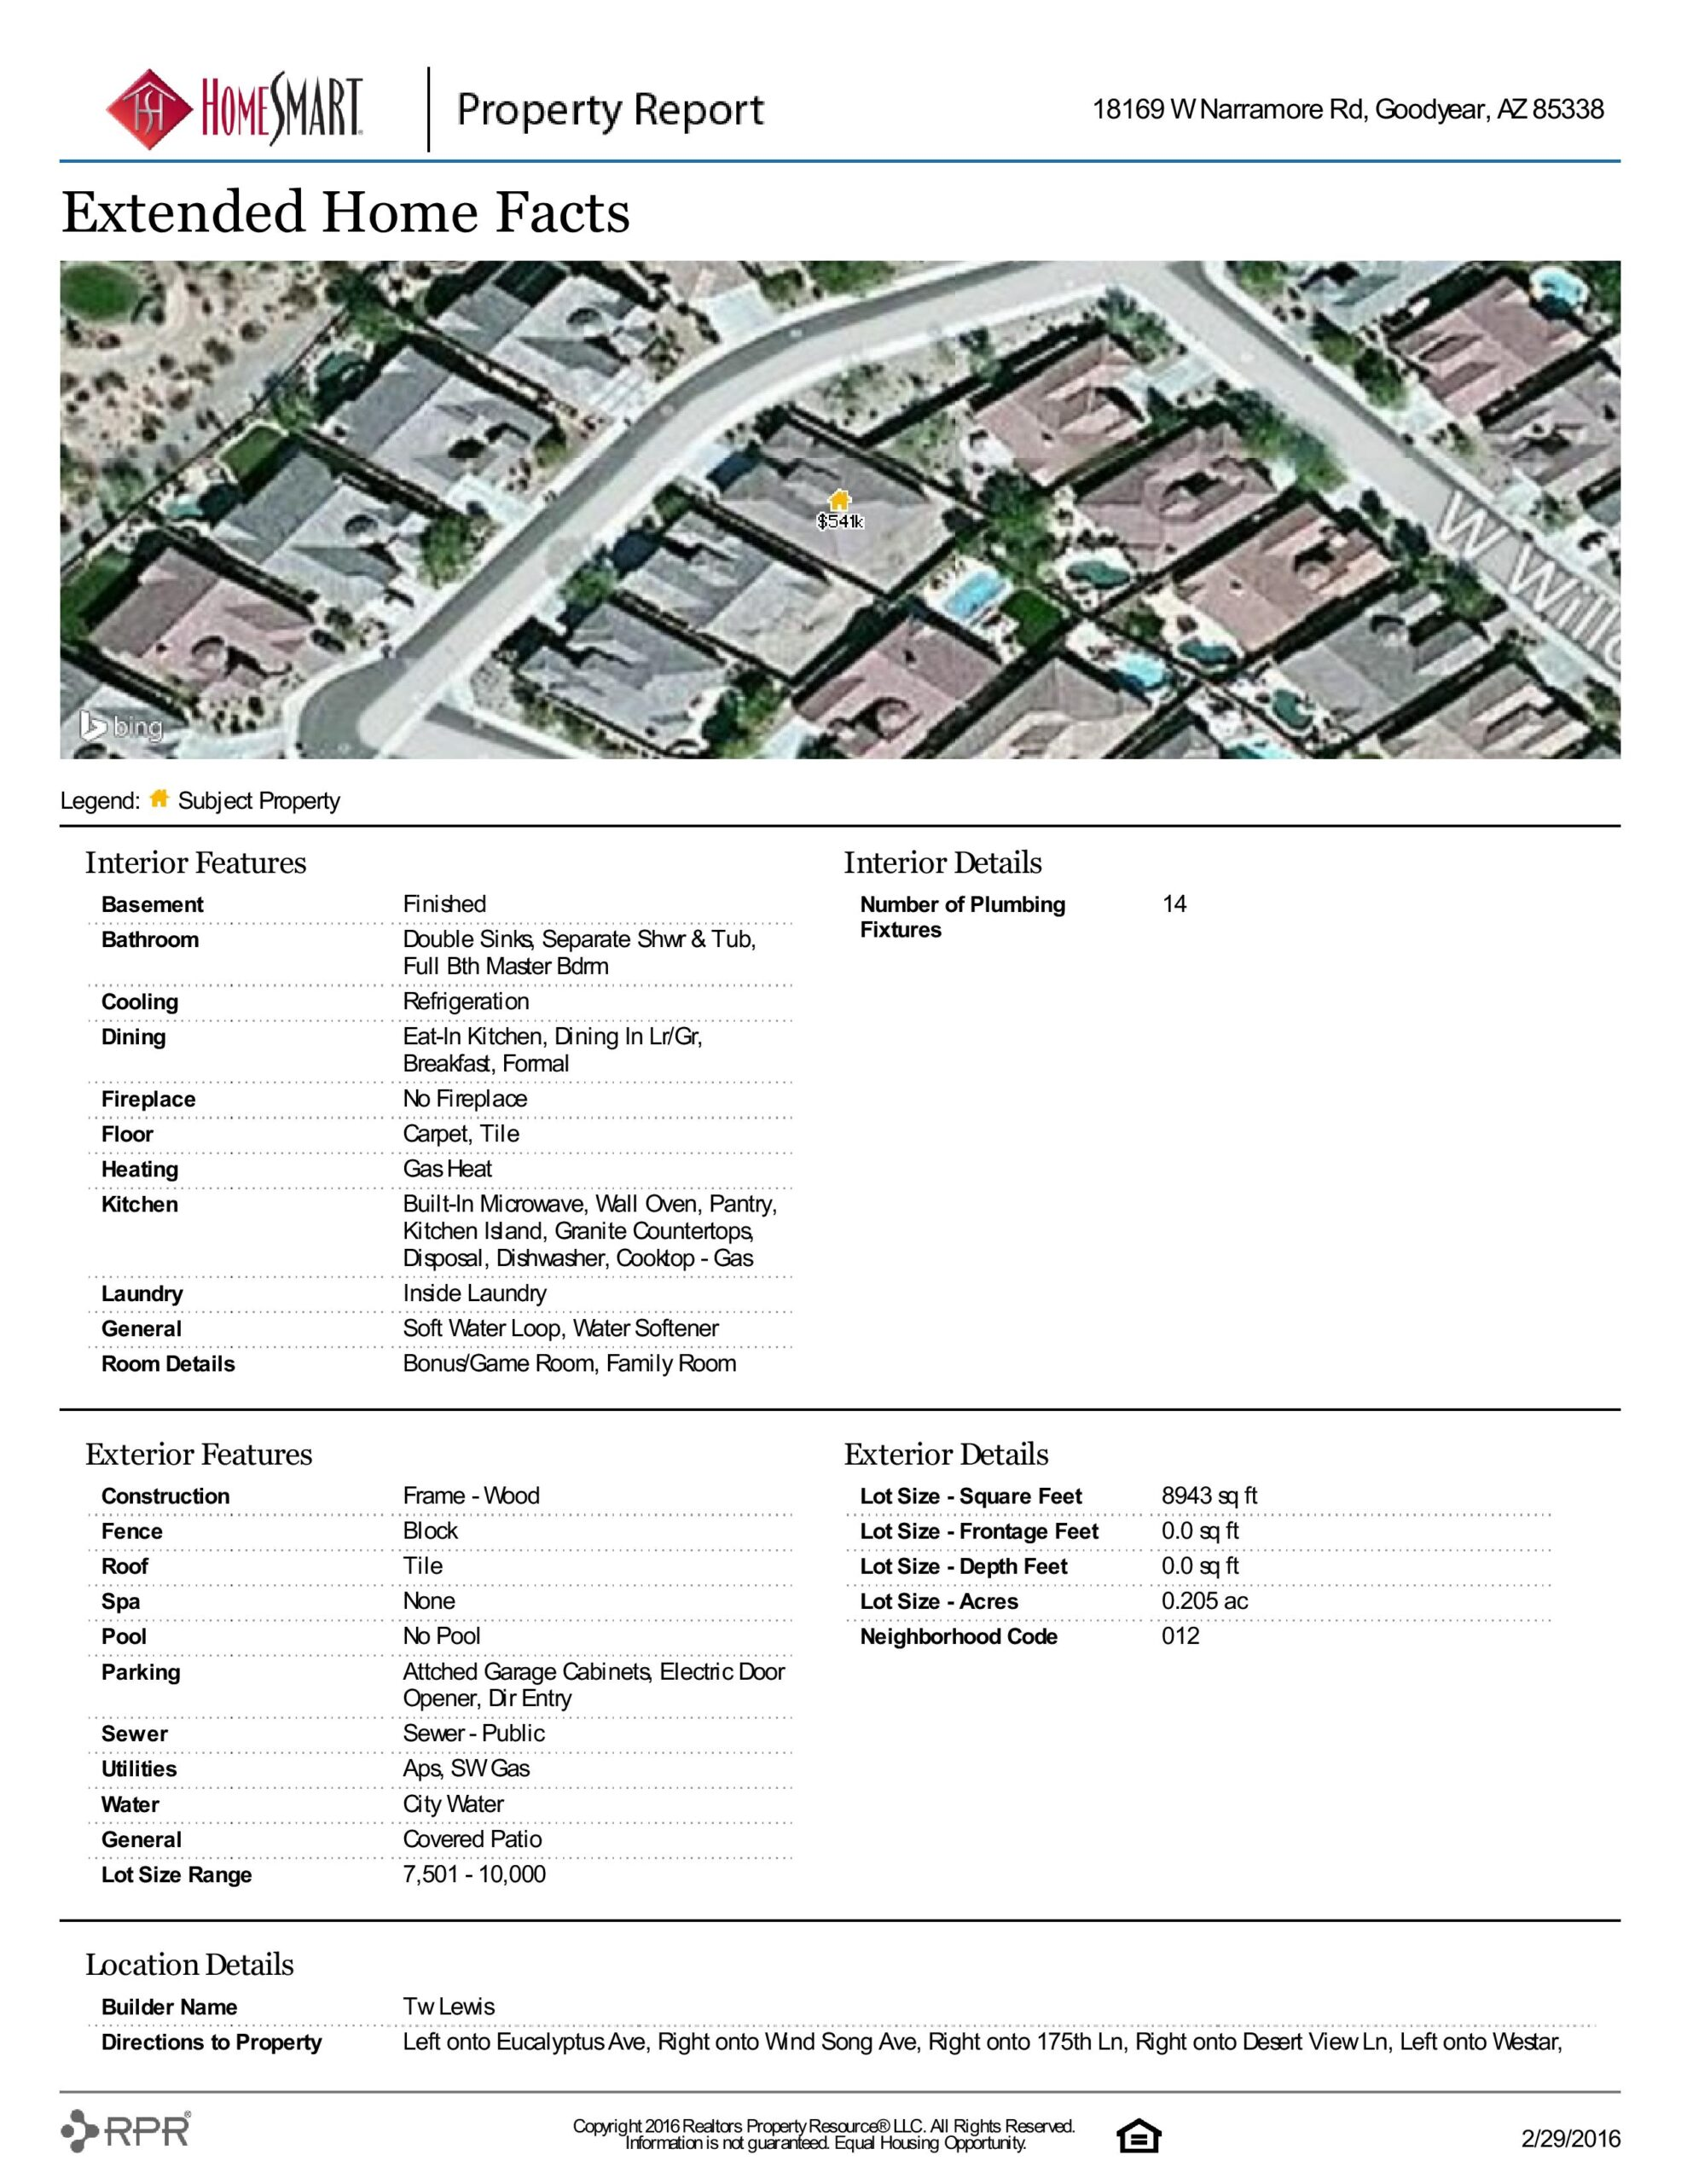 18169 W NARRAMORE RD PROPERTY REPORT-page-004